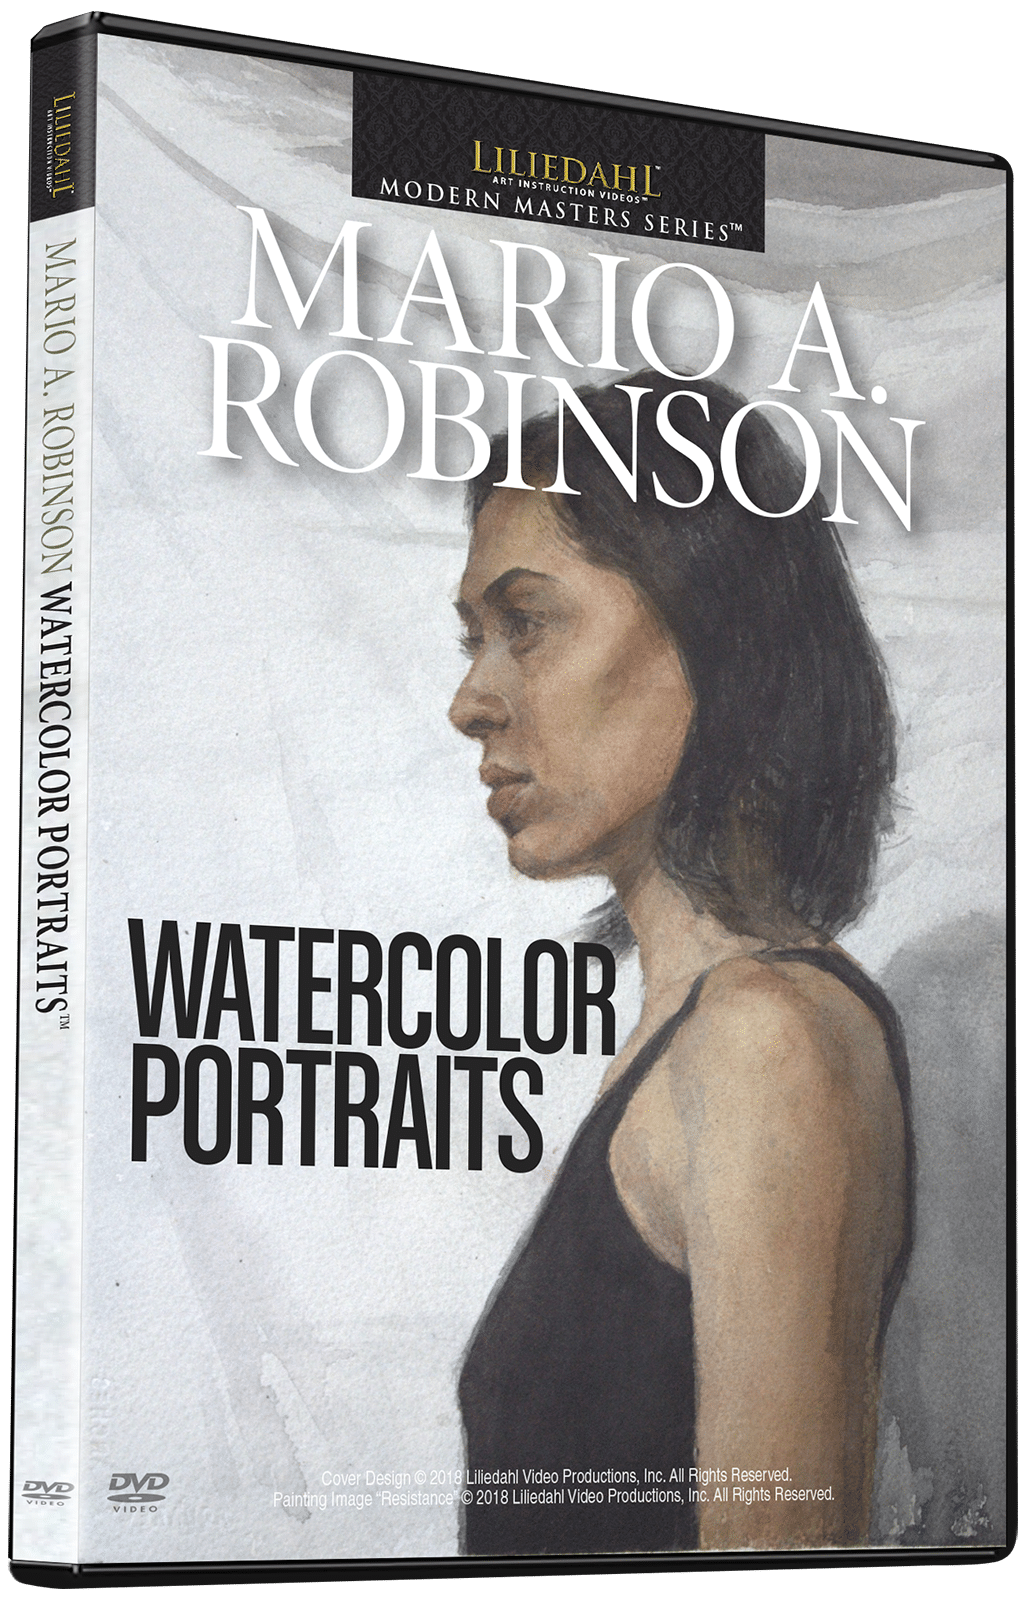 Mario A. Robinson: Watercolor Portraits